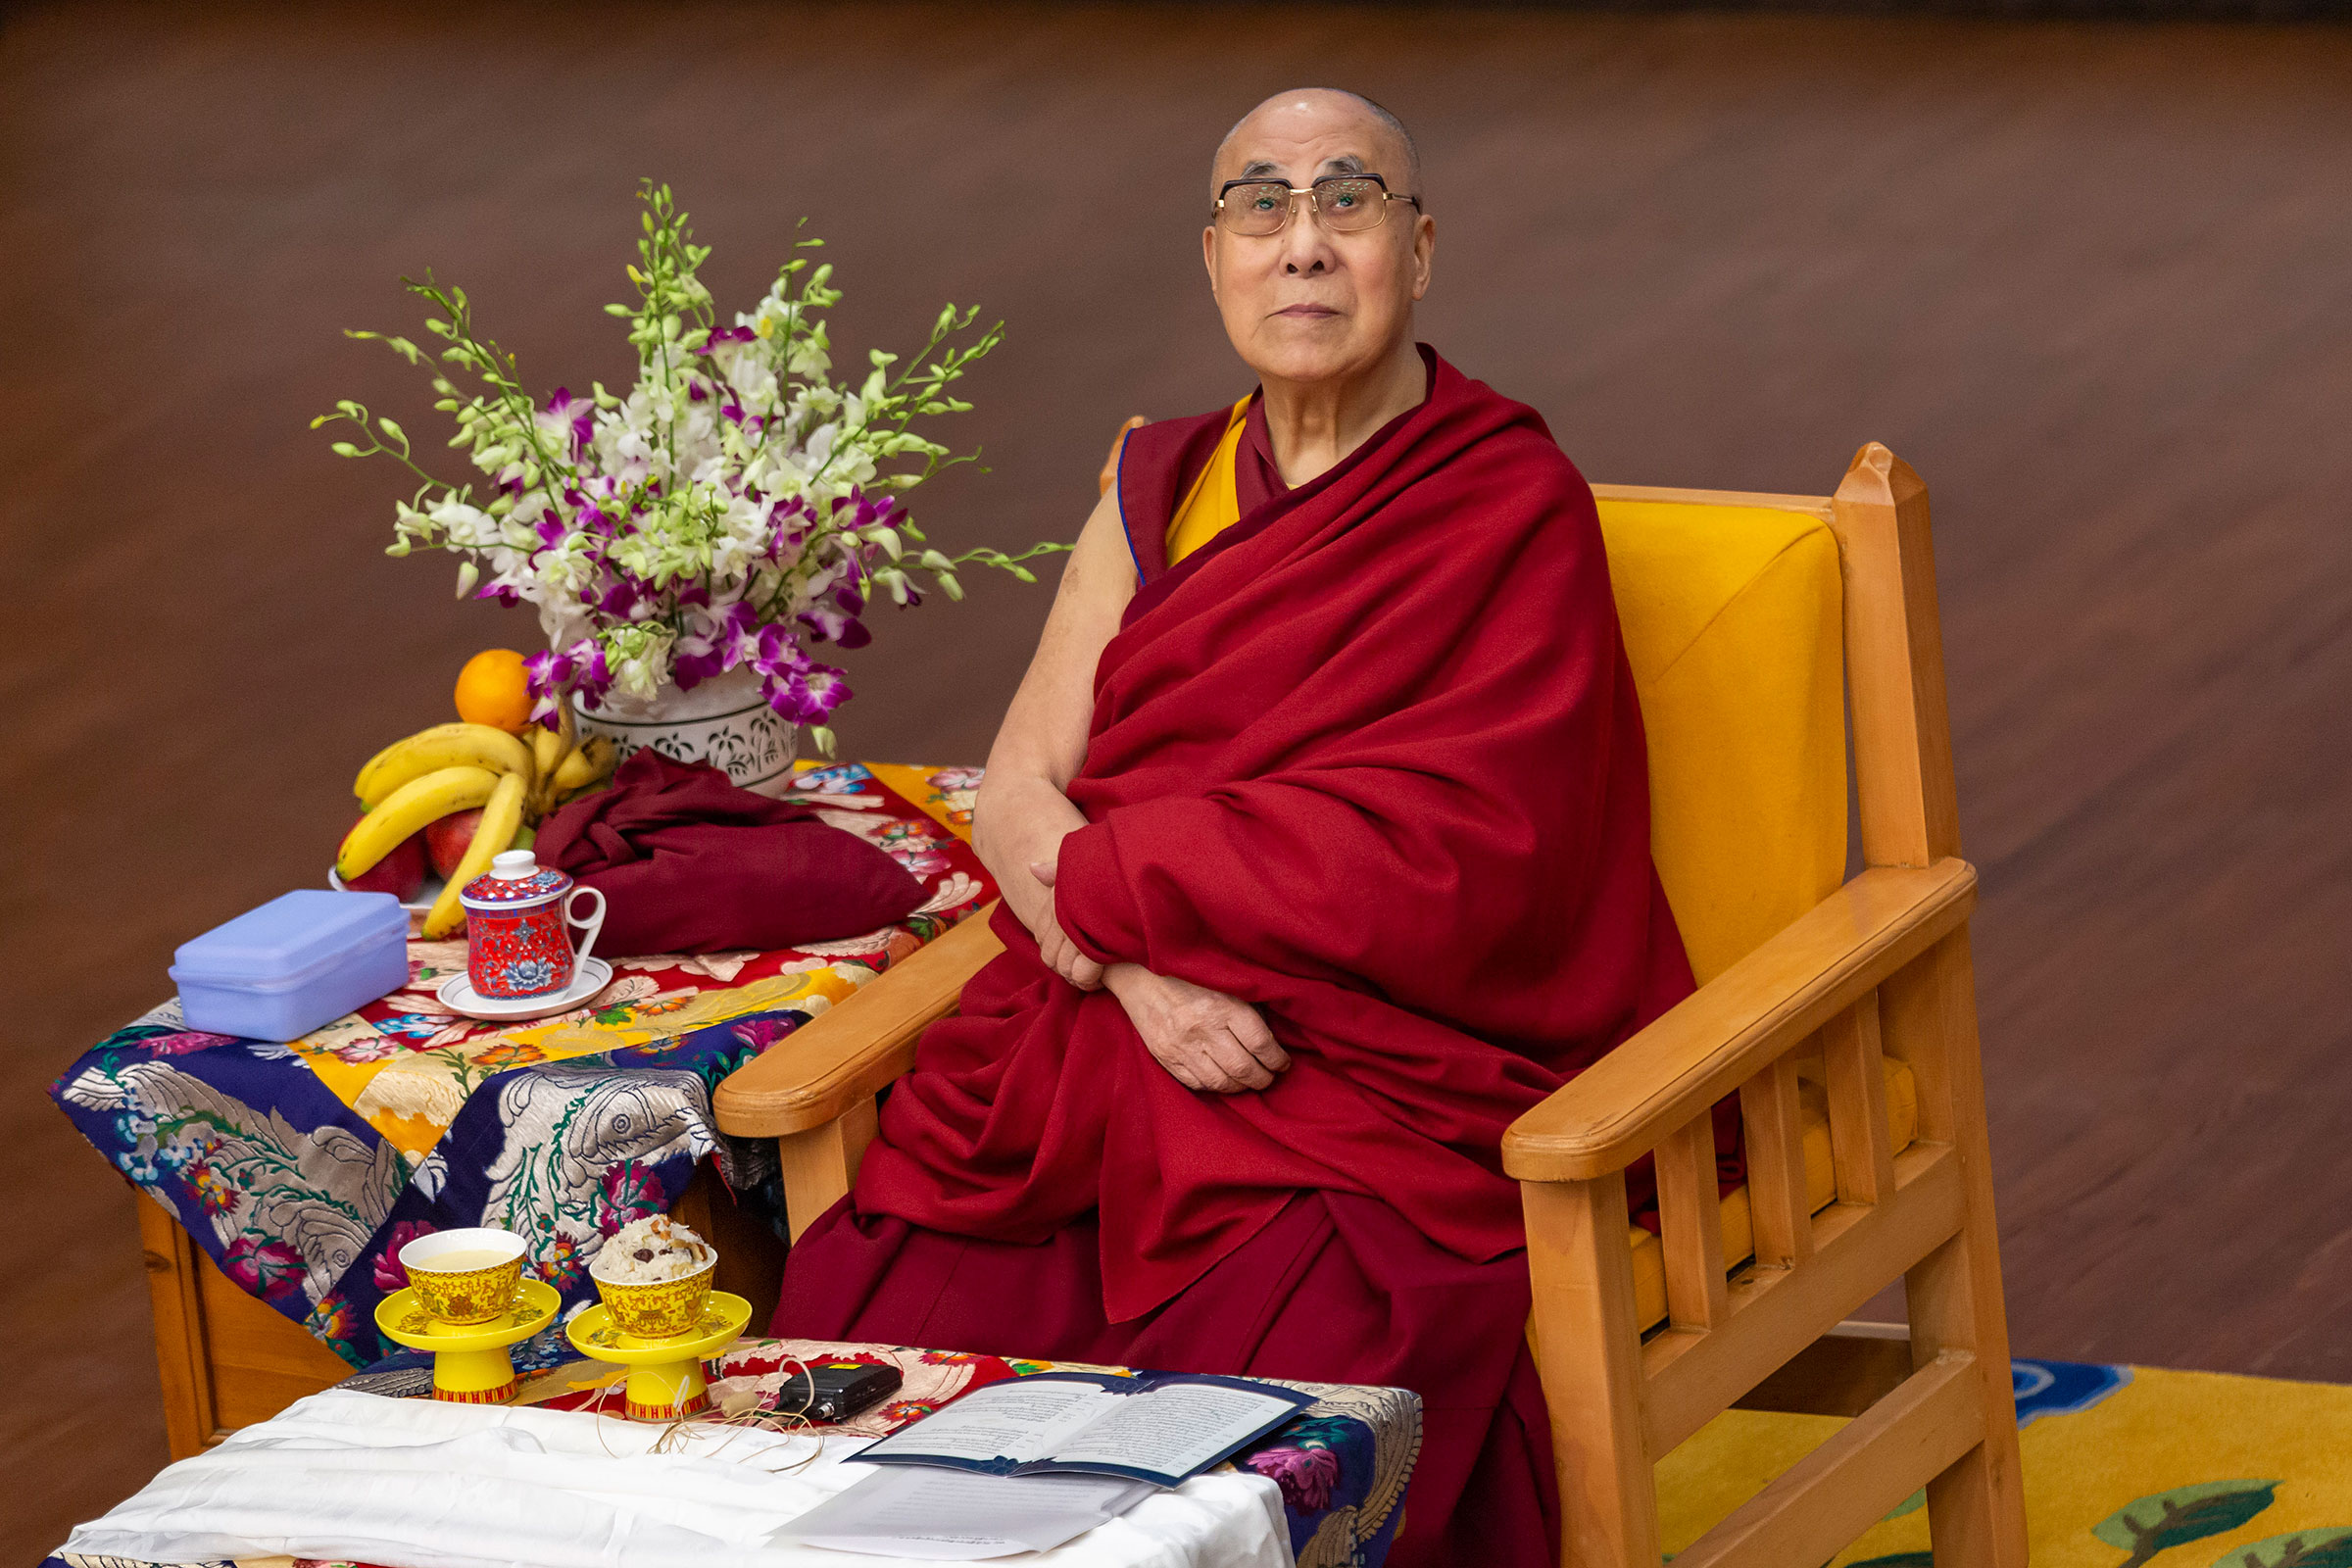 Tibetan spiritual leader the Dalai Lama looks on as he sits on his ceremonial chair at the Tibetan Institute of Performing Arts in Dharmsala, India, on Oct. 29, 2019.